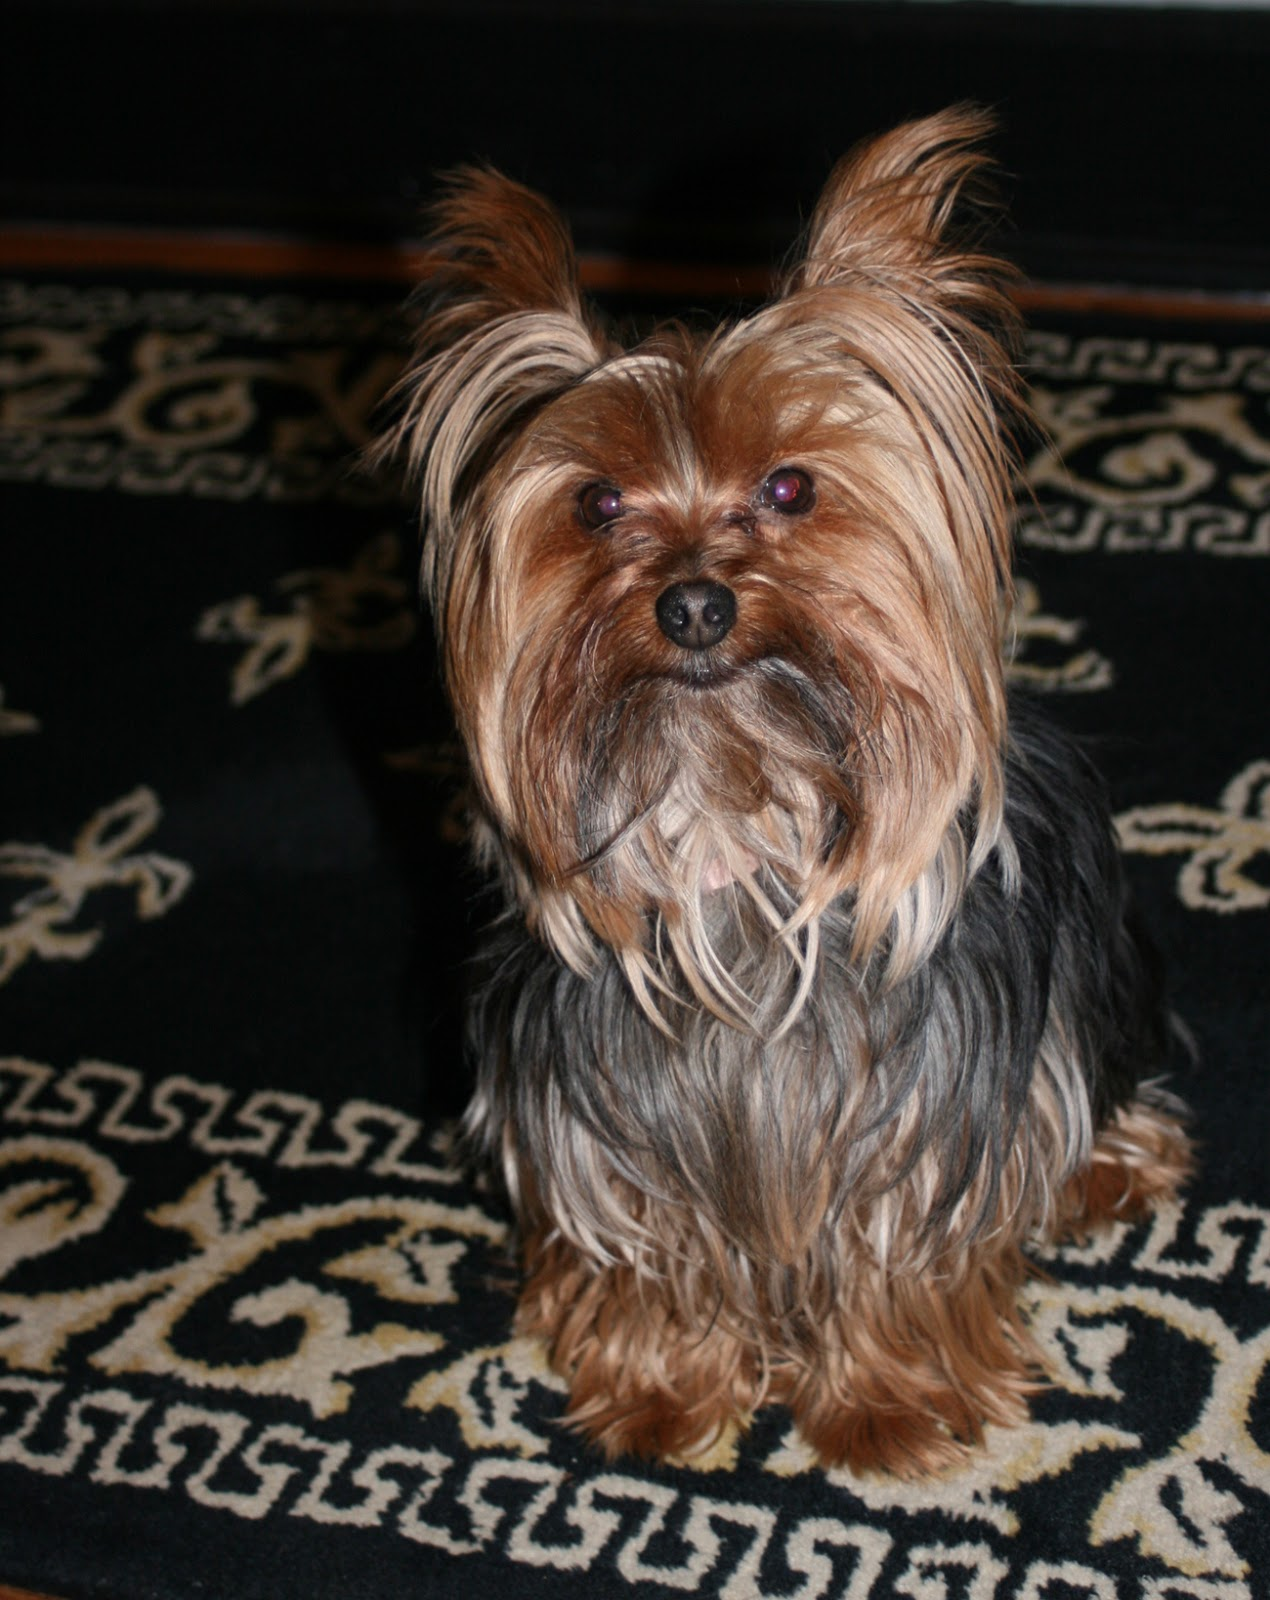 Miniature Yorkshire Terrier: Time for a Yorkie Haircut